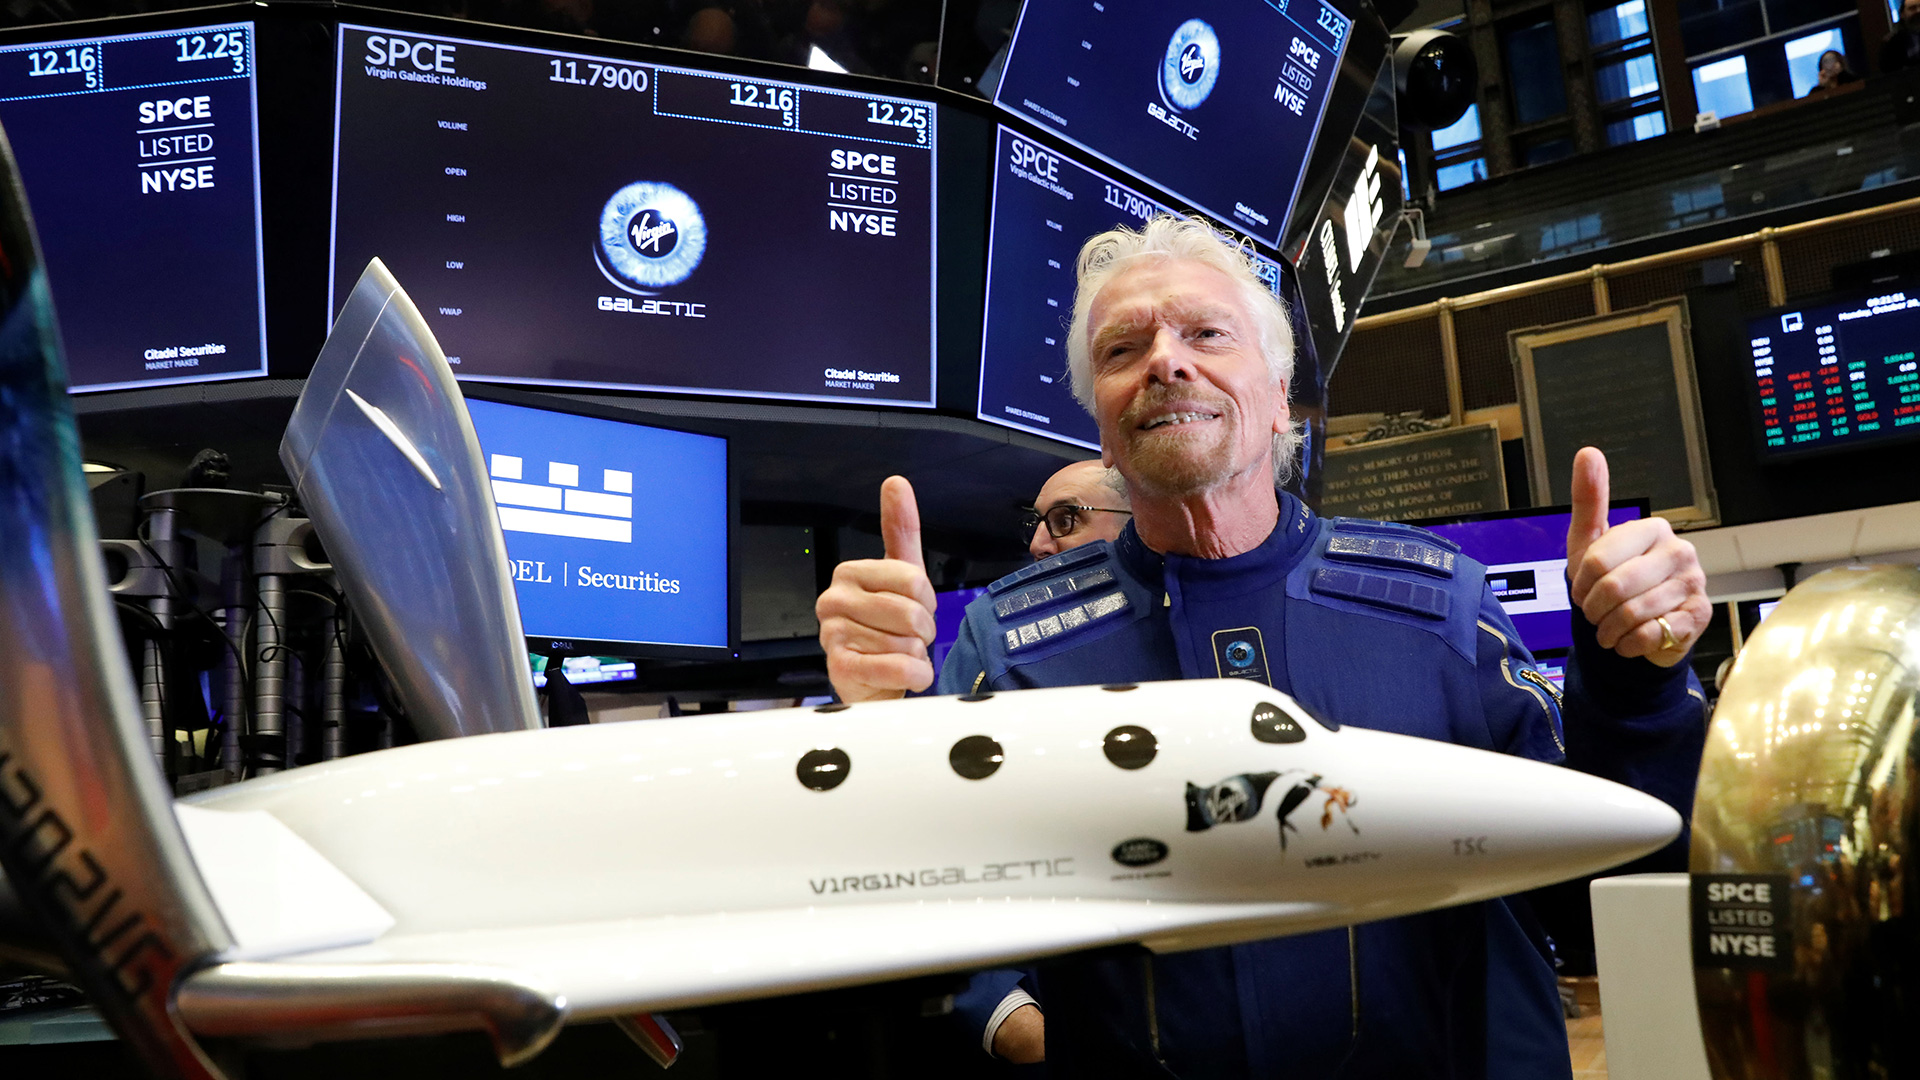 Virgin Galactic and Richard Brandson